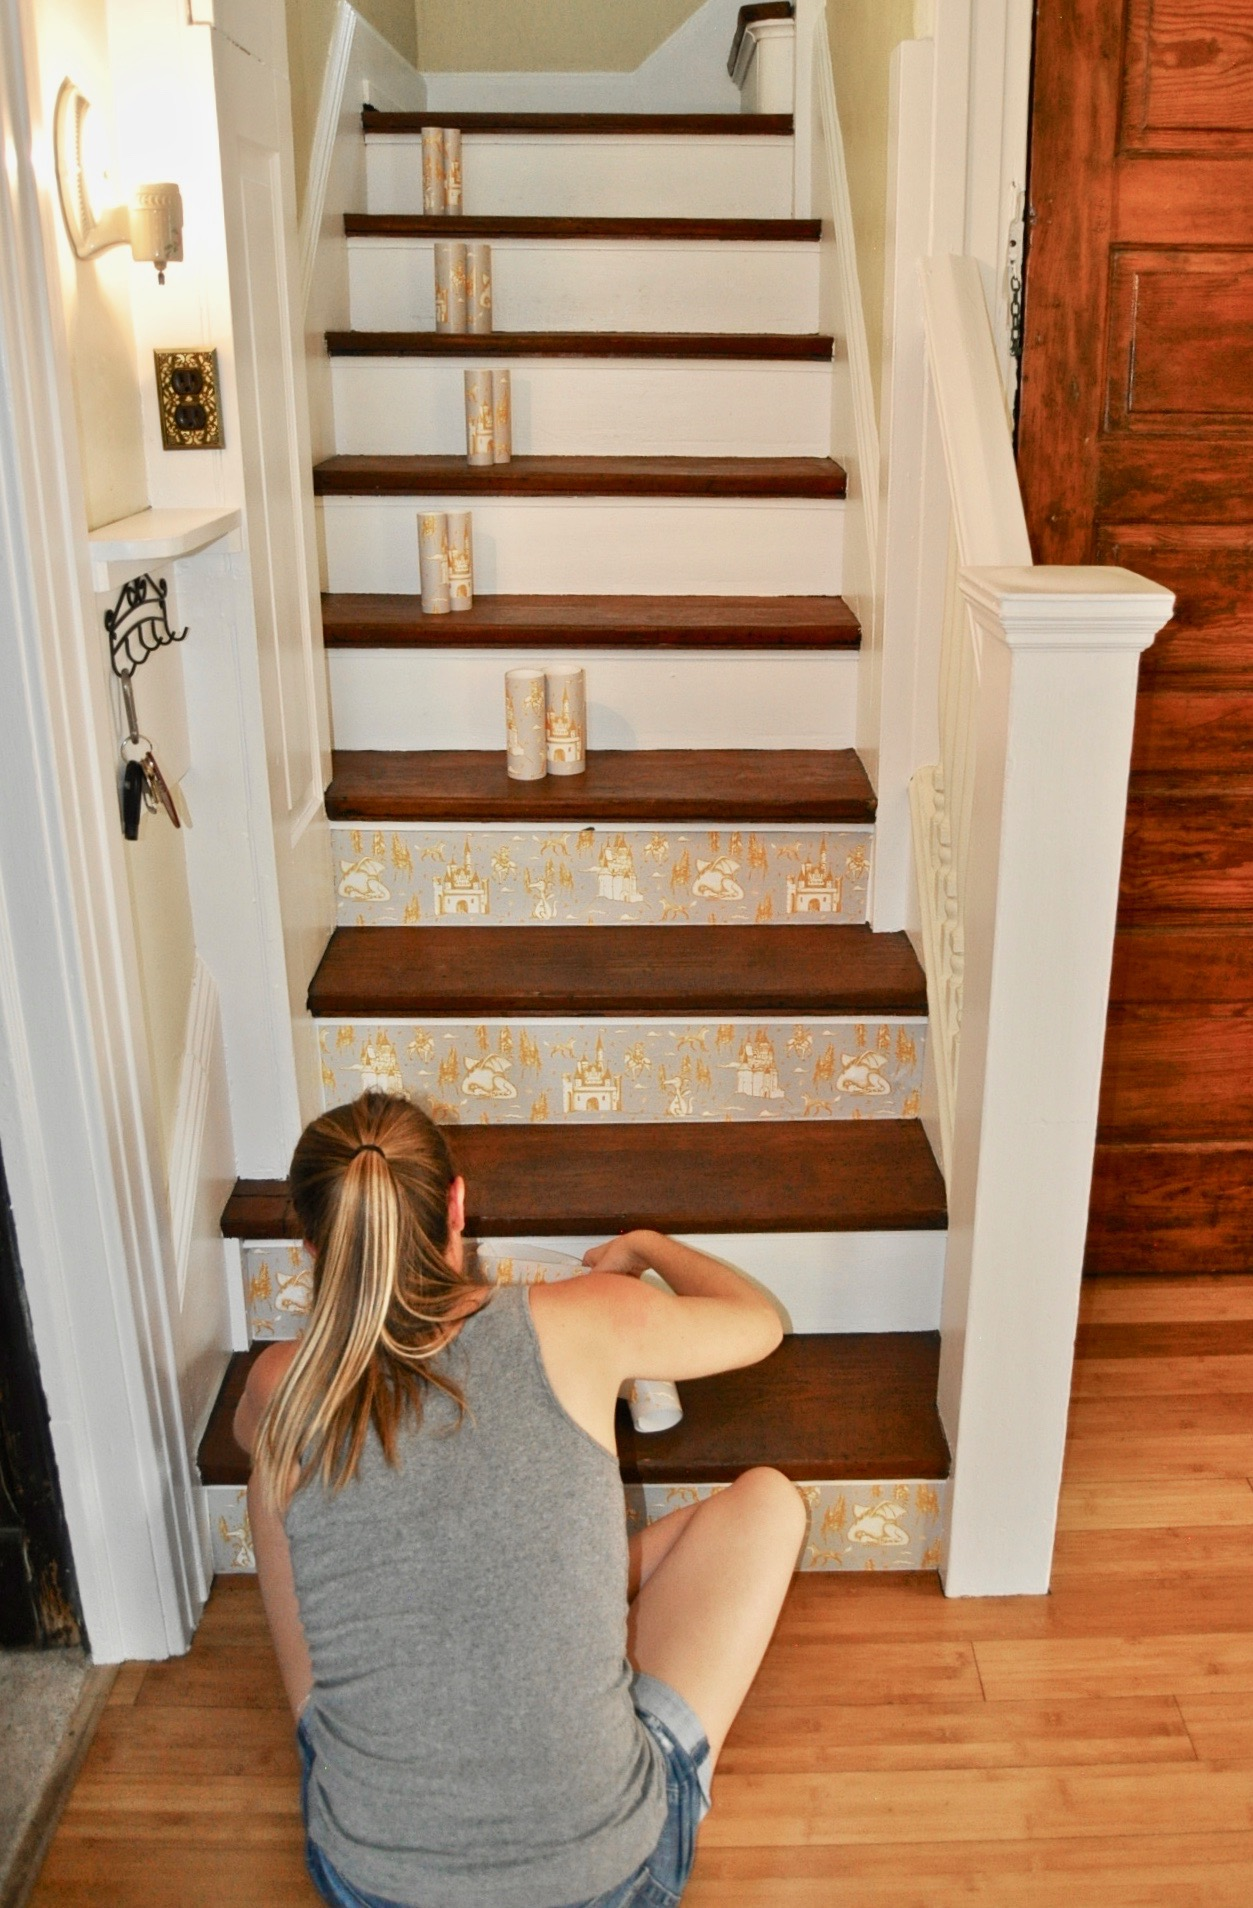 Measure your stair treads and pre-cut the wallpaper for each step.